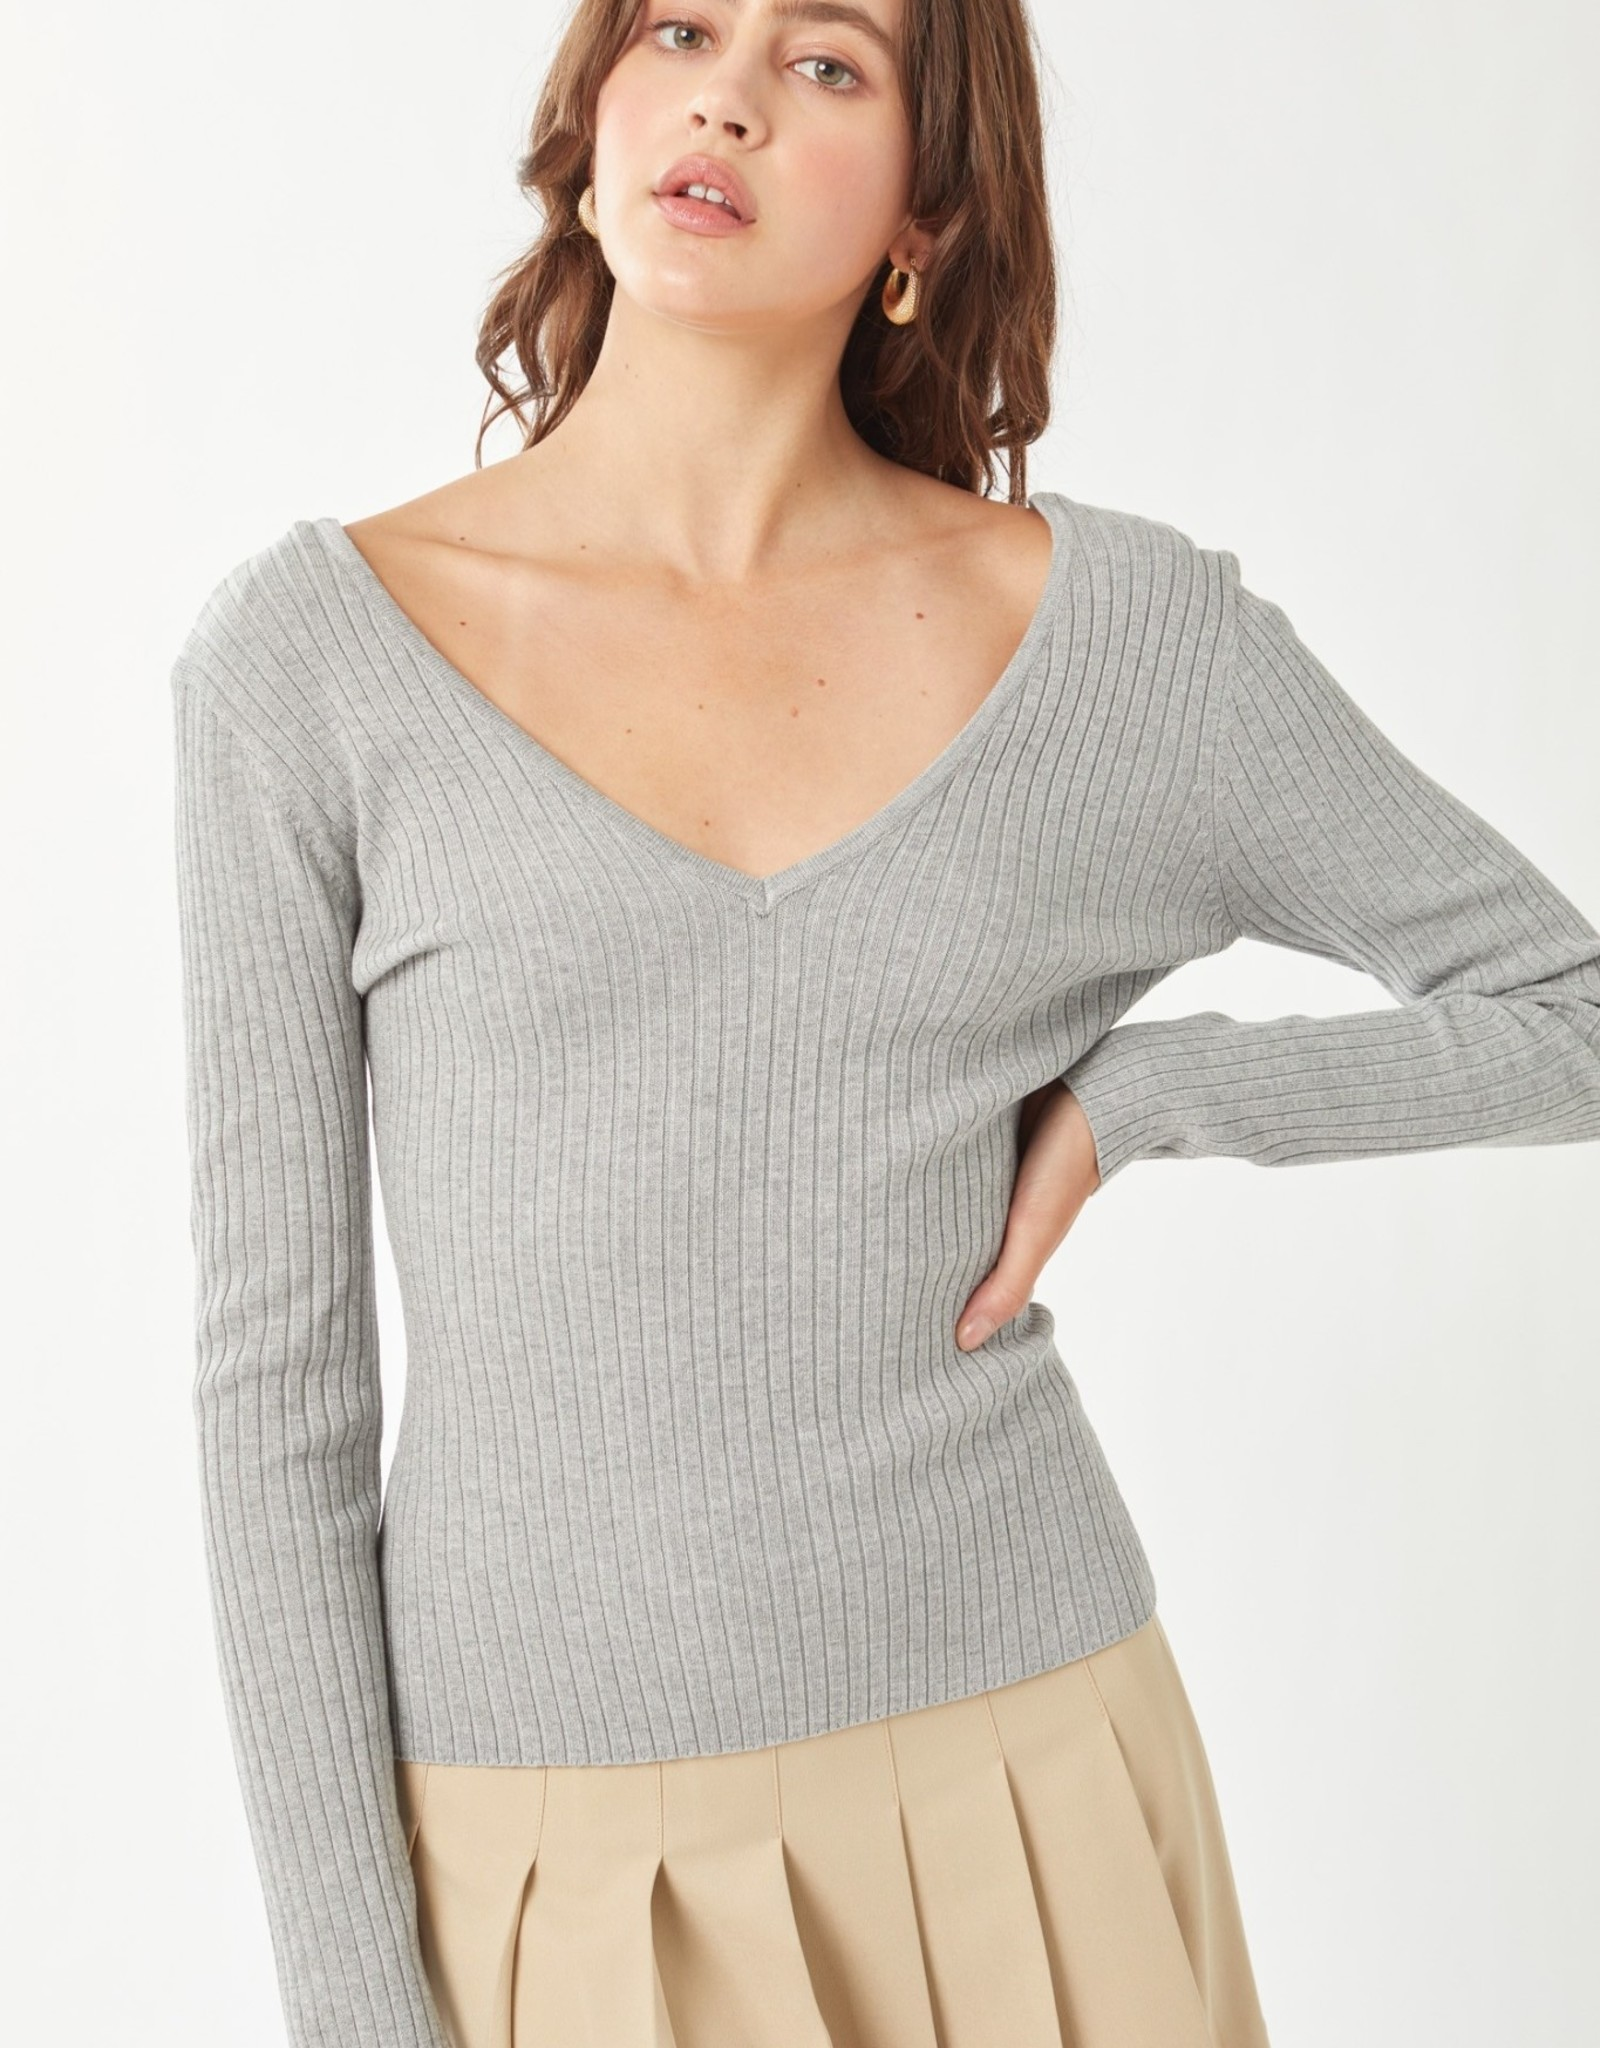 Miss Bliss LS V Neck Sweater Top-